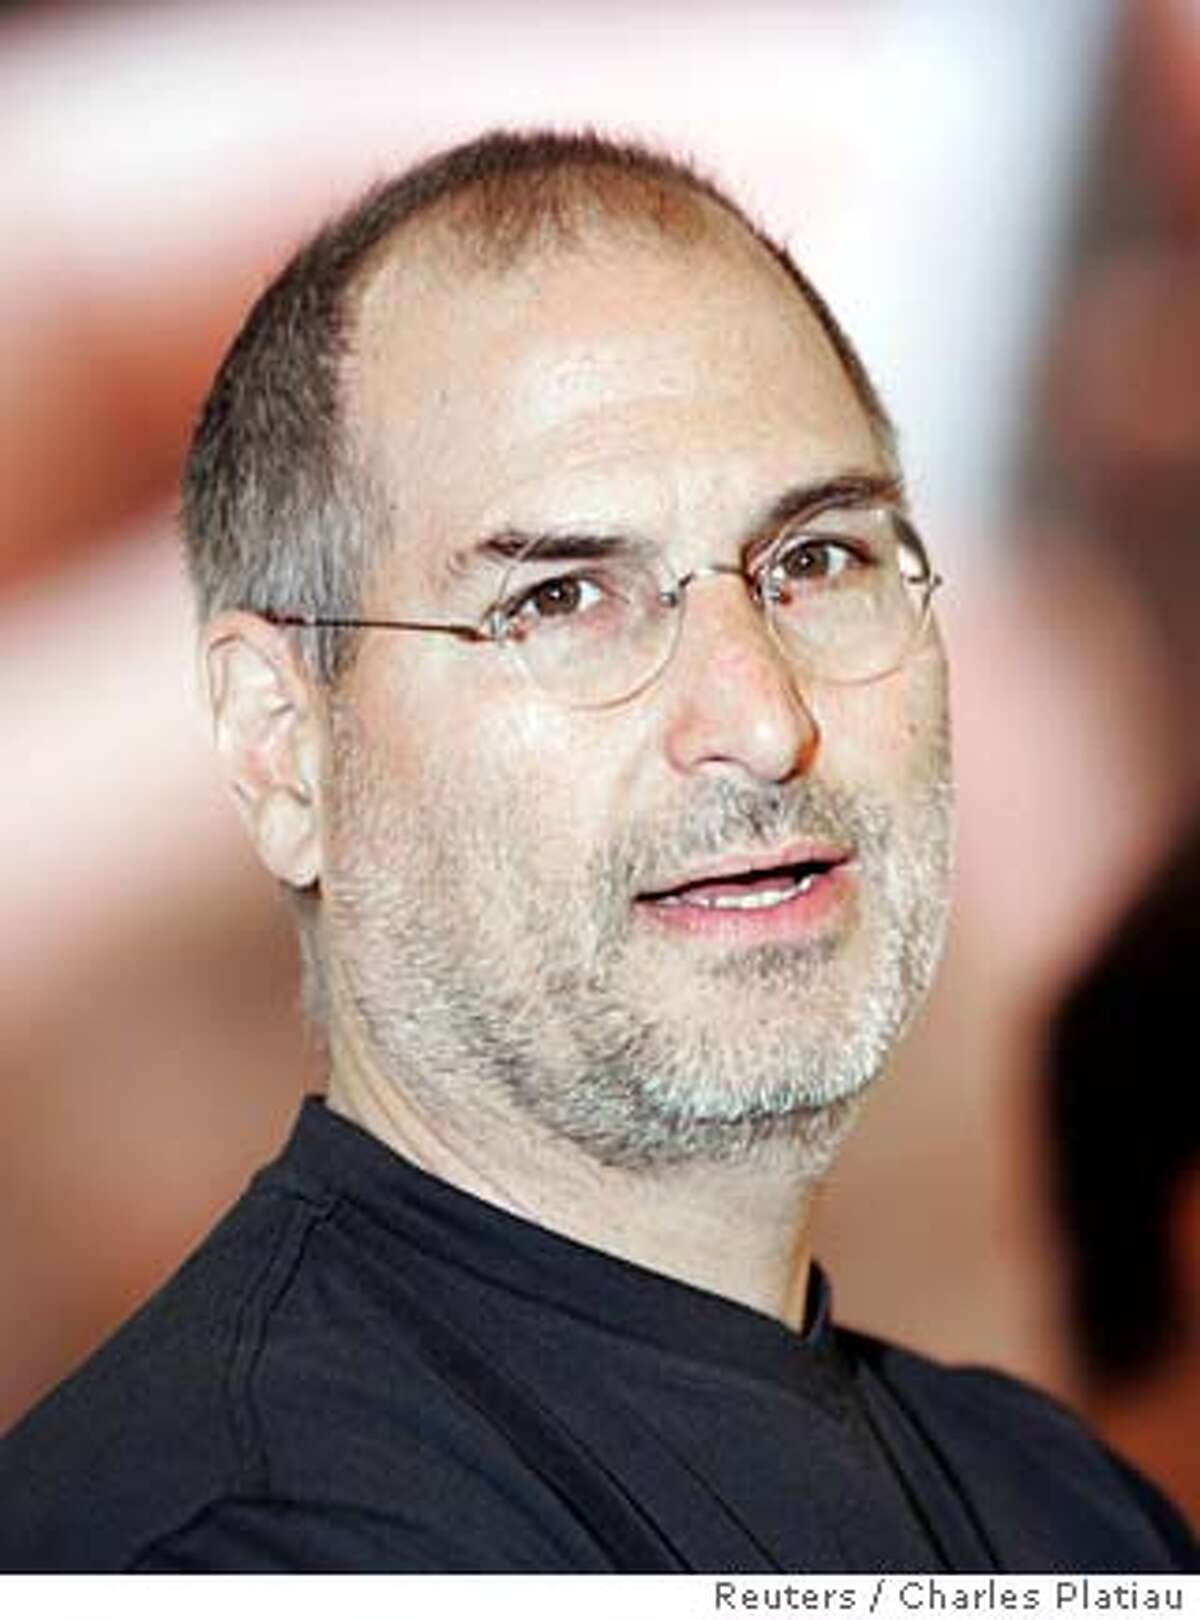 Apple Computer Inc. Chief Executive Steve Jobs poses on opening day of Paris Apple Expo 2005